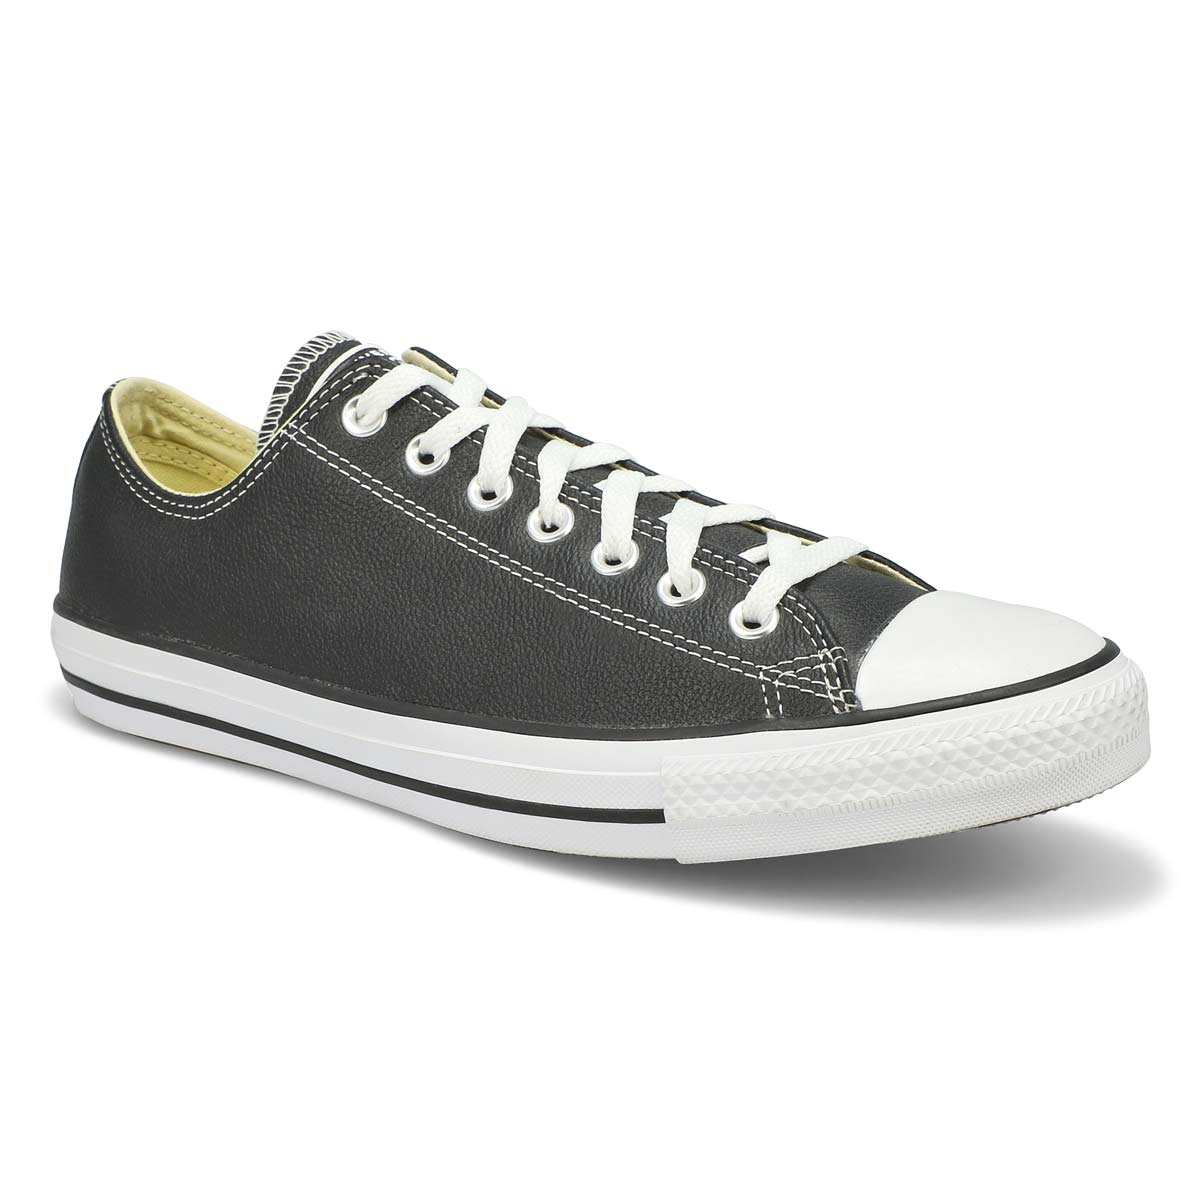 Men's CT ALL STAR LEATHER black sneakers